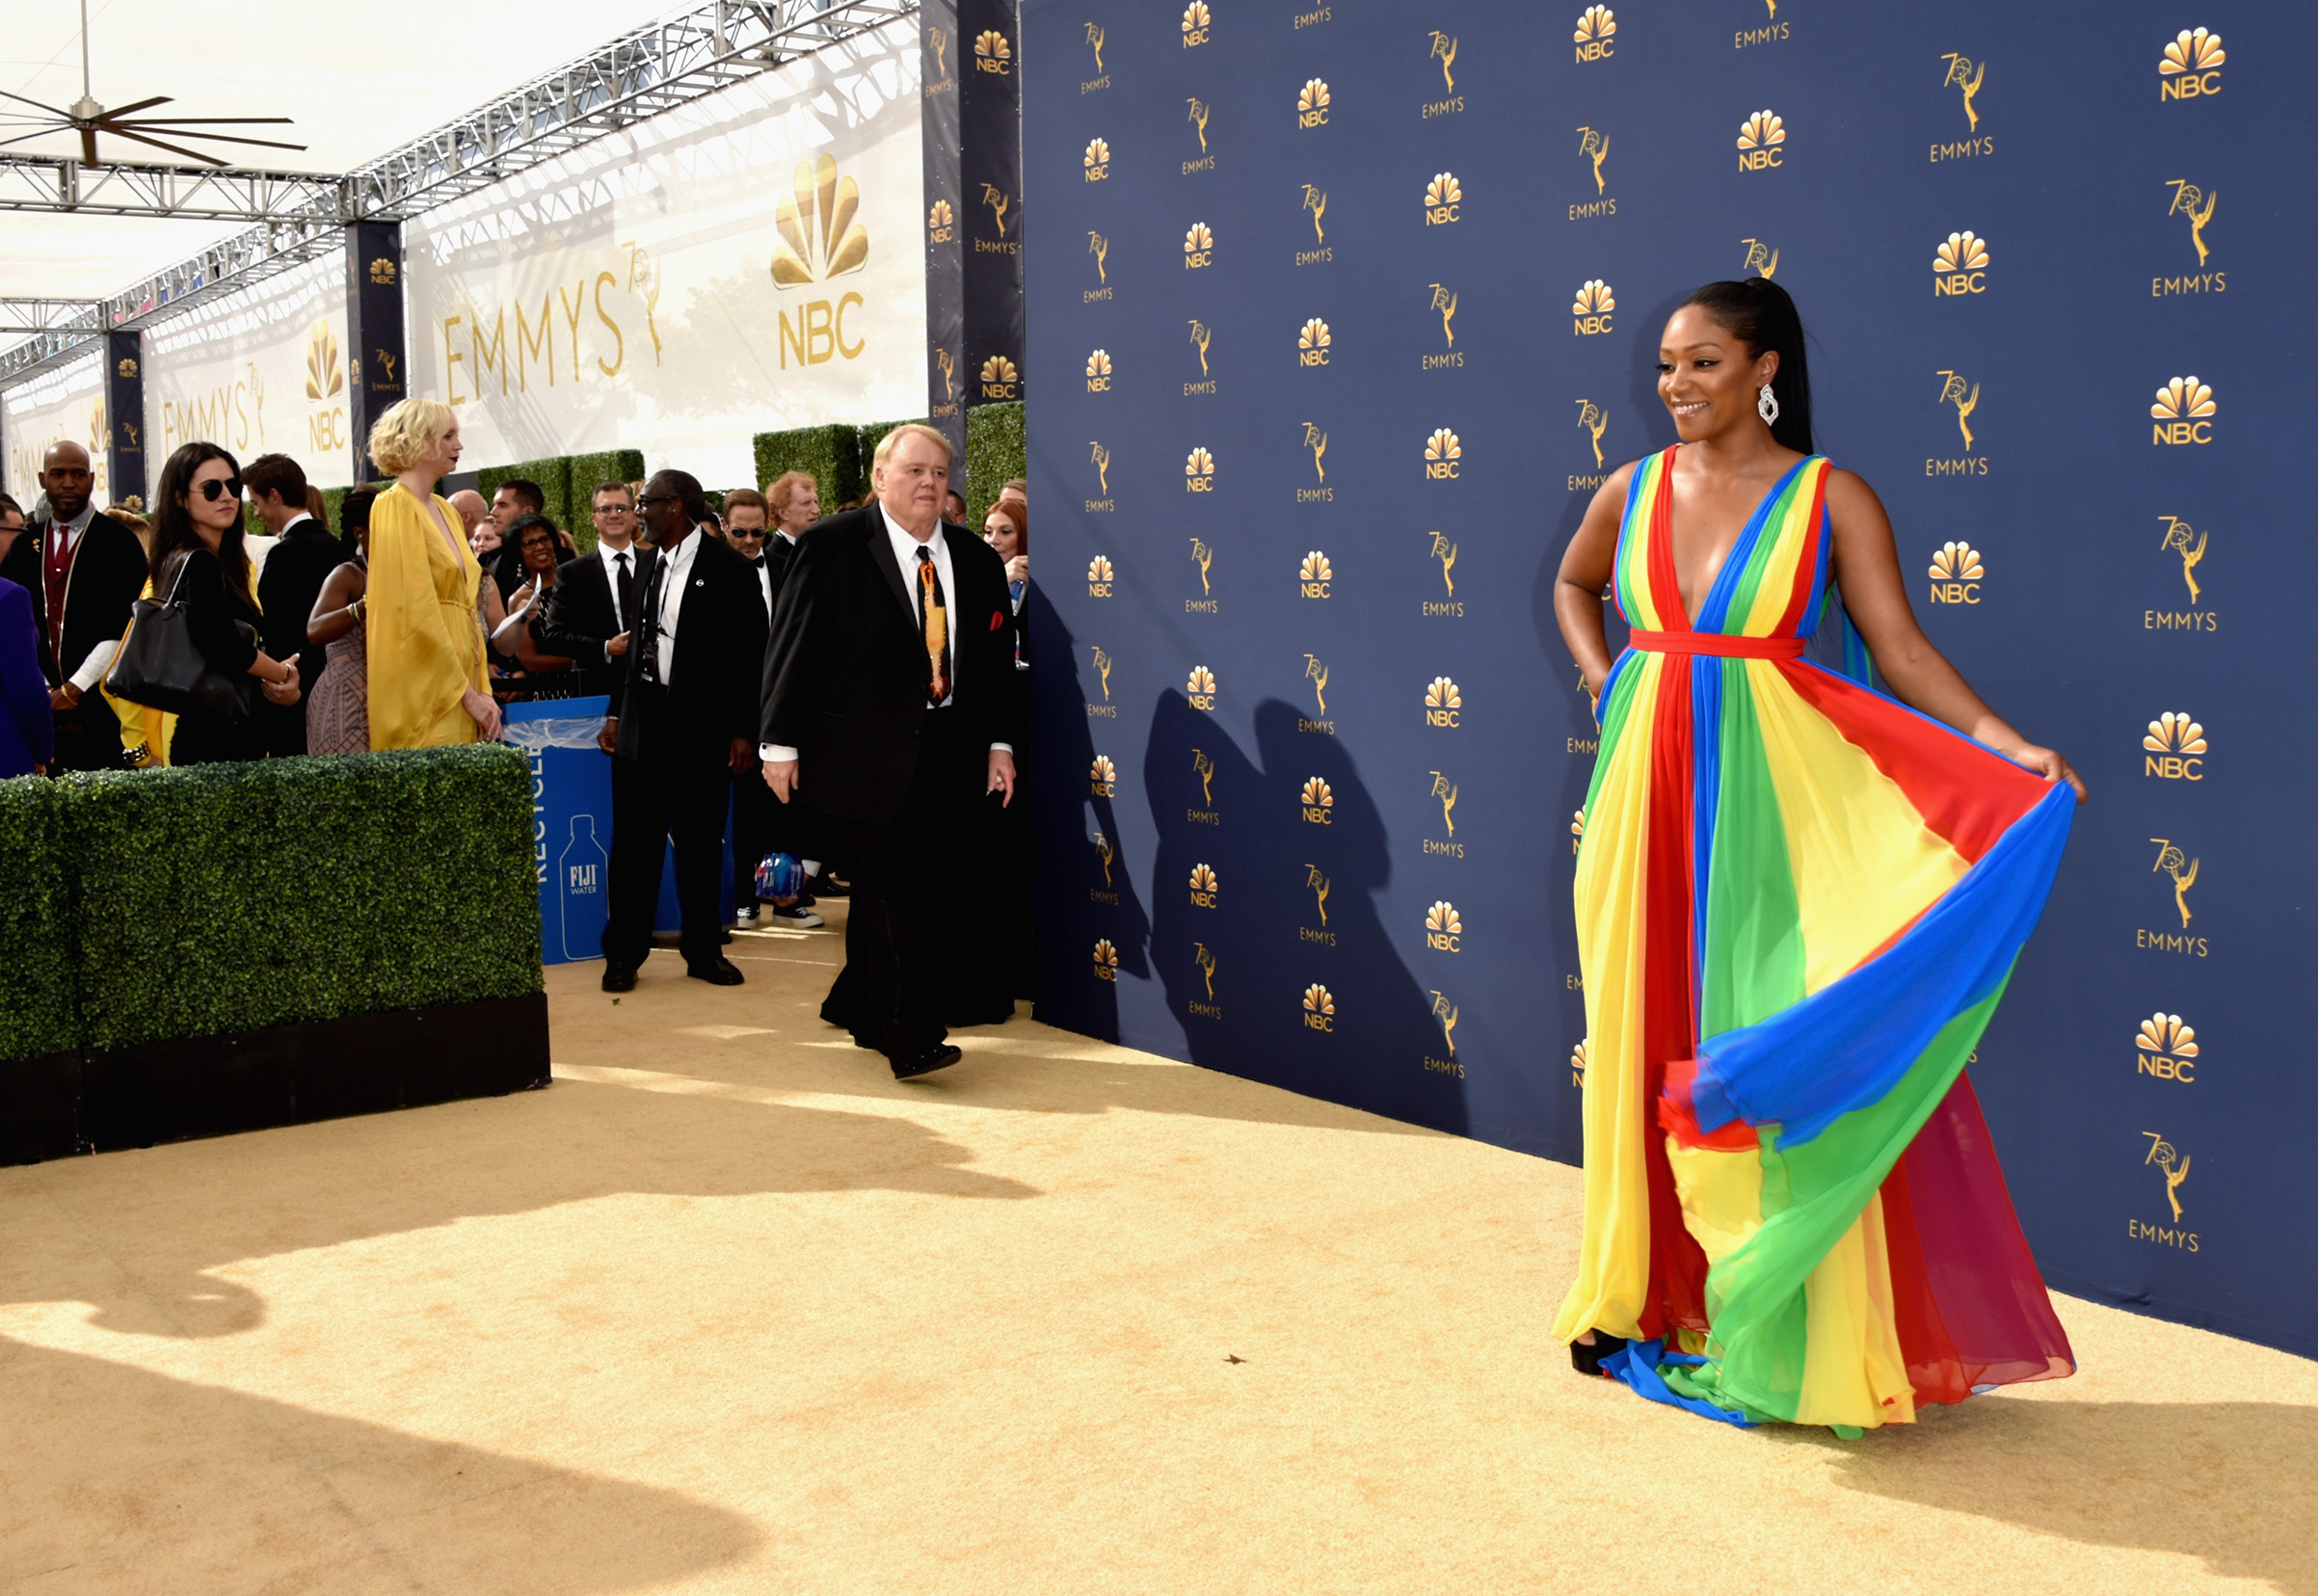 Tiffany Haddish attends the 70th Emmy Awards on Sept. 17.